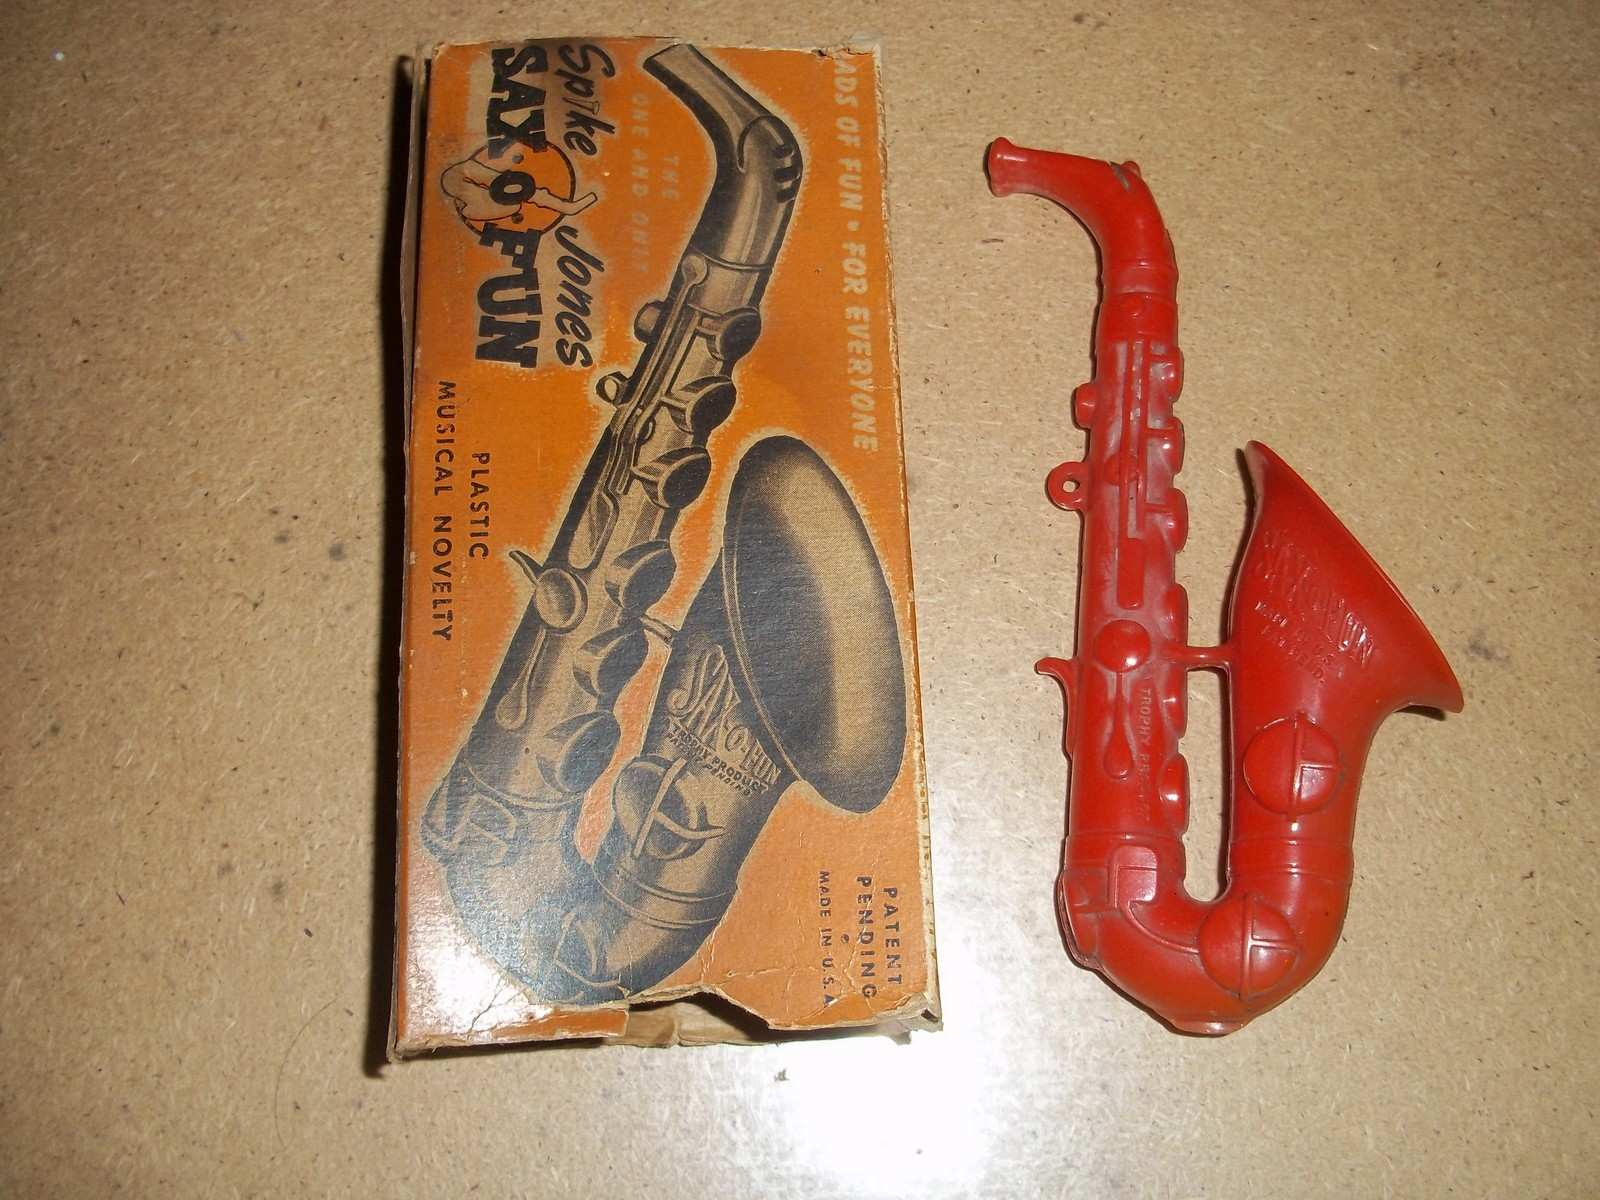 Sax-o-Fun Spike Jones toy sax, vintage saxophone-shaped toy